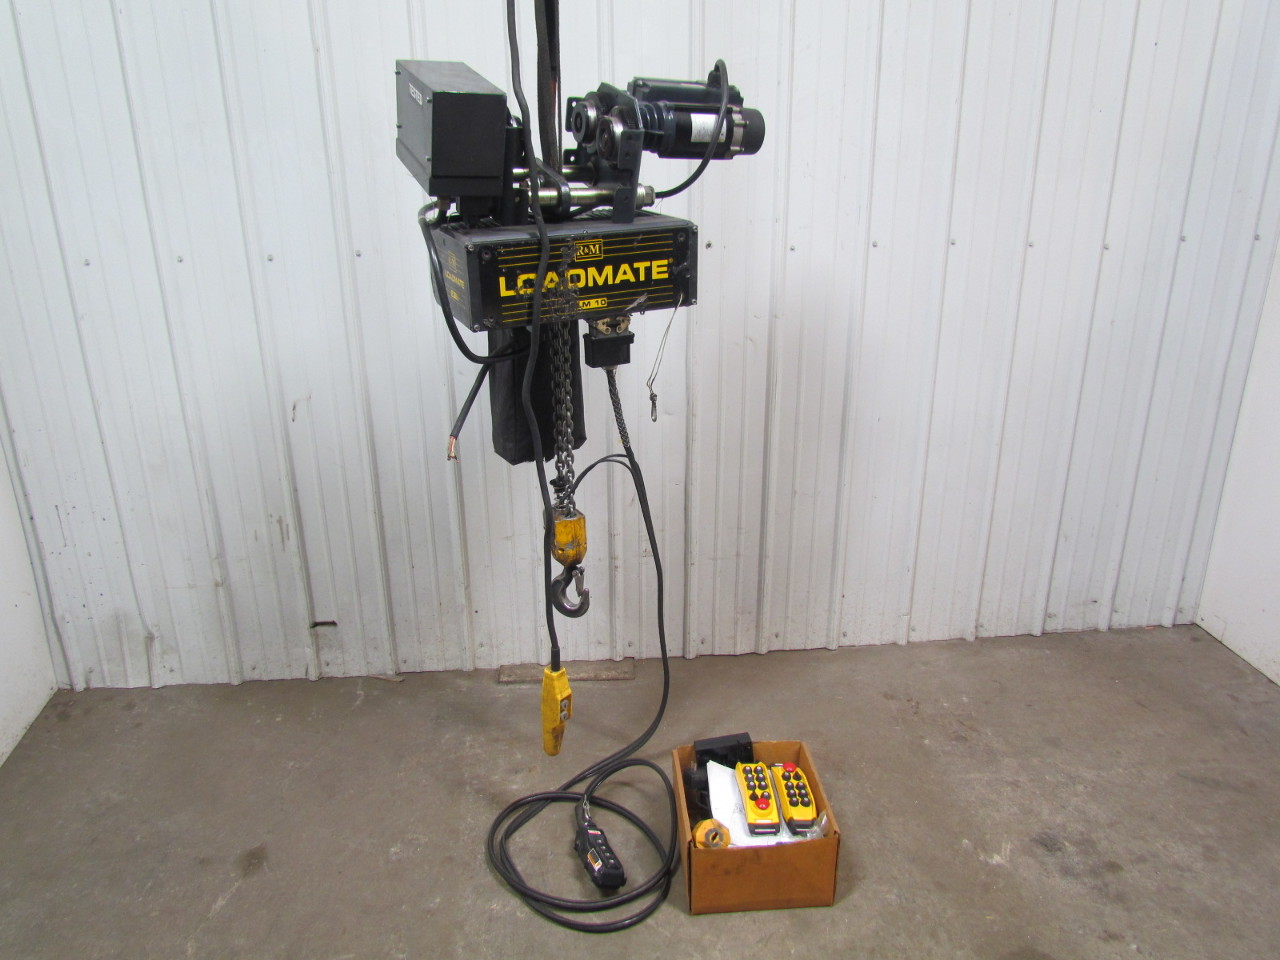 R m loadmate lm10 2 ton 4000lb electric chain hoist 16 for 2 ton hoist with motorized trolley